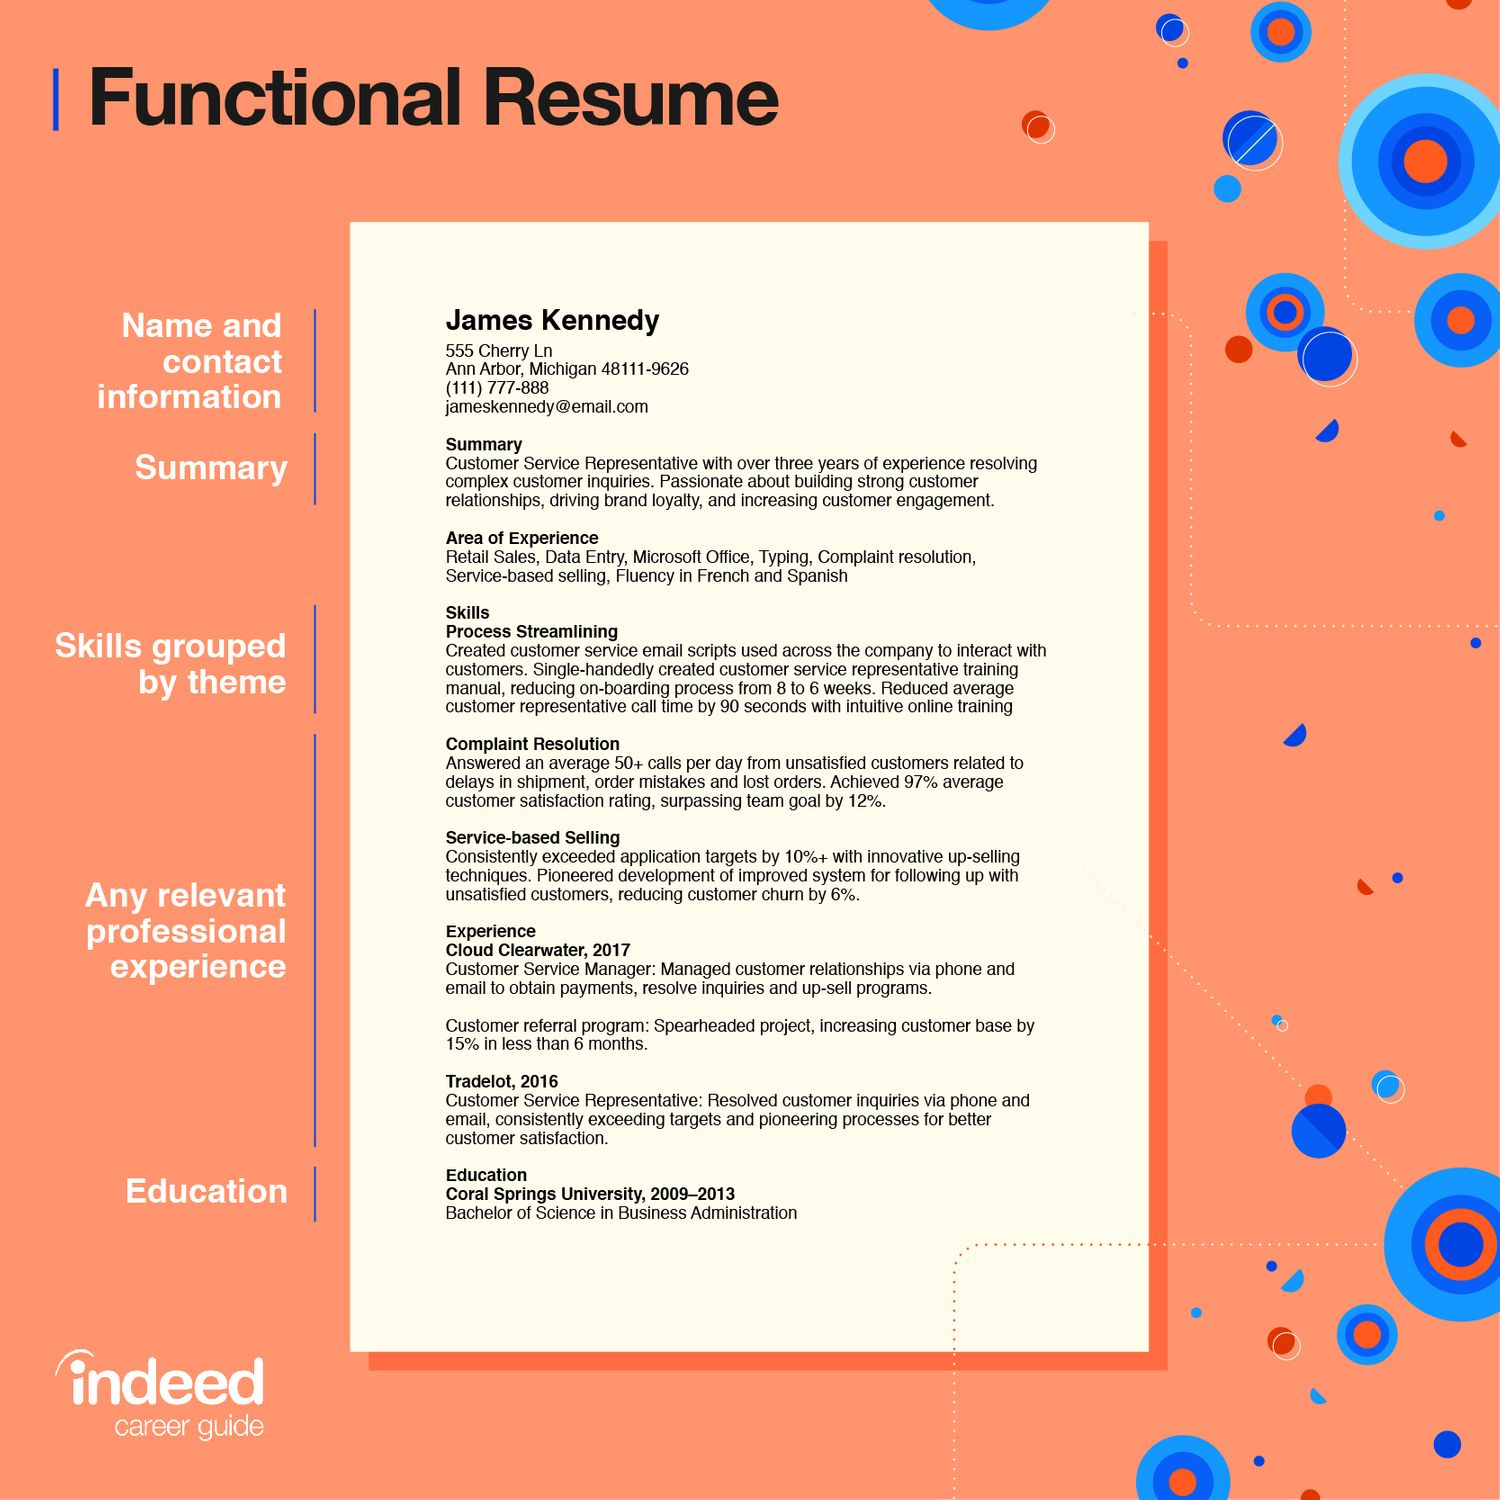 functional resume definition tips and examples indeed template resized cover letter for Resume Functional Resume Template 2020